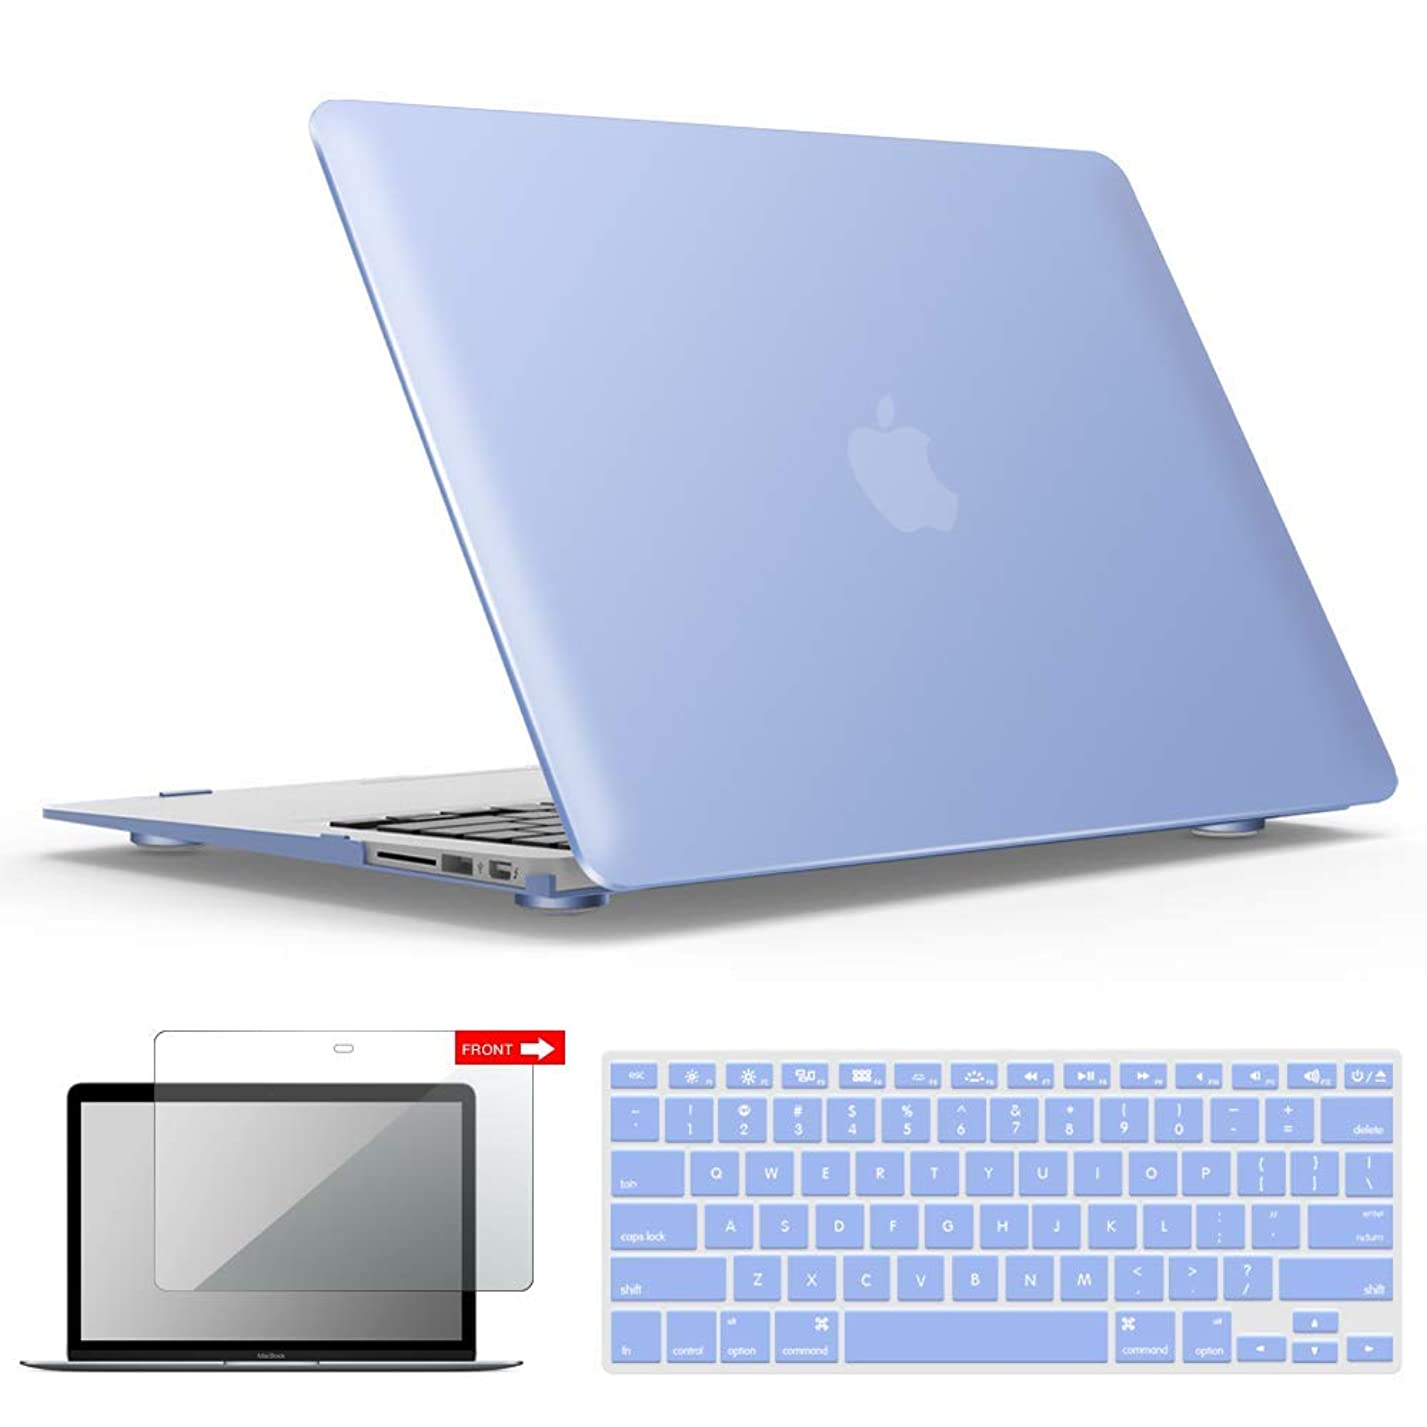 IBENZER MacBook Air 13 Inch Case, Soft Touch Hard Case Shell Cover with Keyboard Cover Screen Protector for Apple MacBook Air 13 A1369 1466 NO Touch ID, Serenity Blue,MMA1301SRL+2 xg27001794